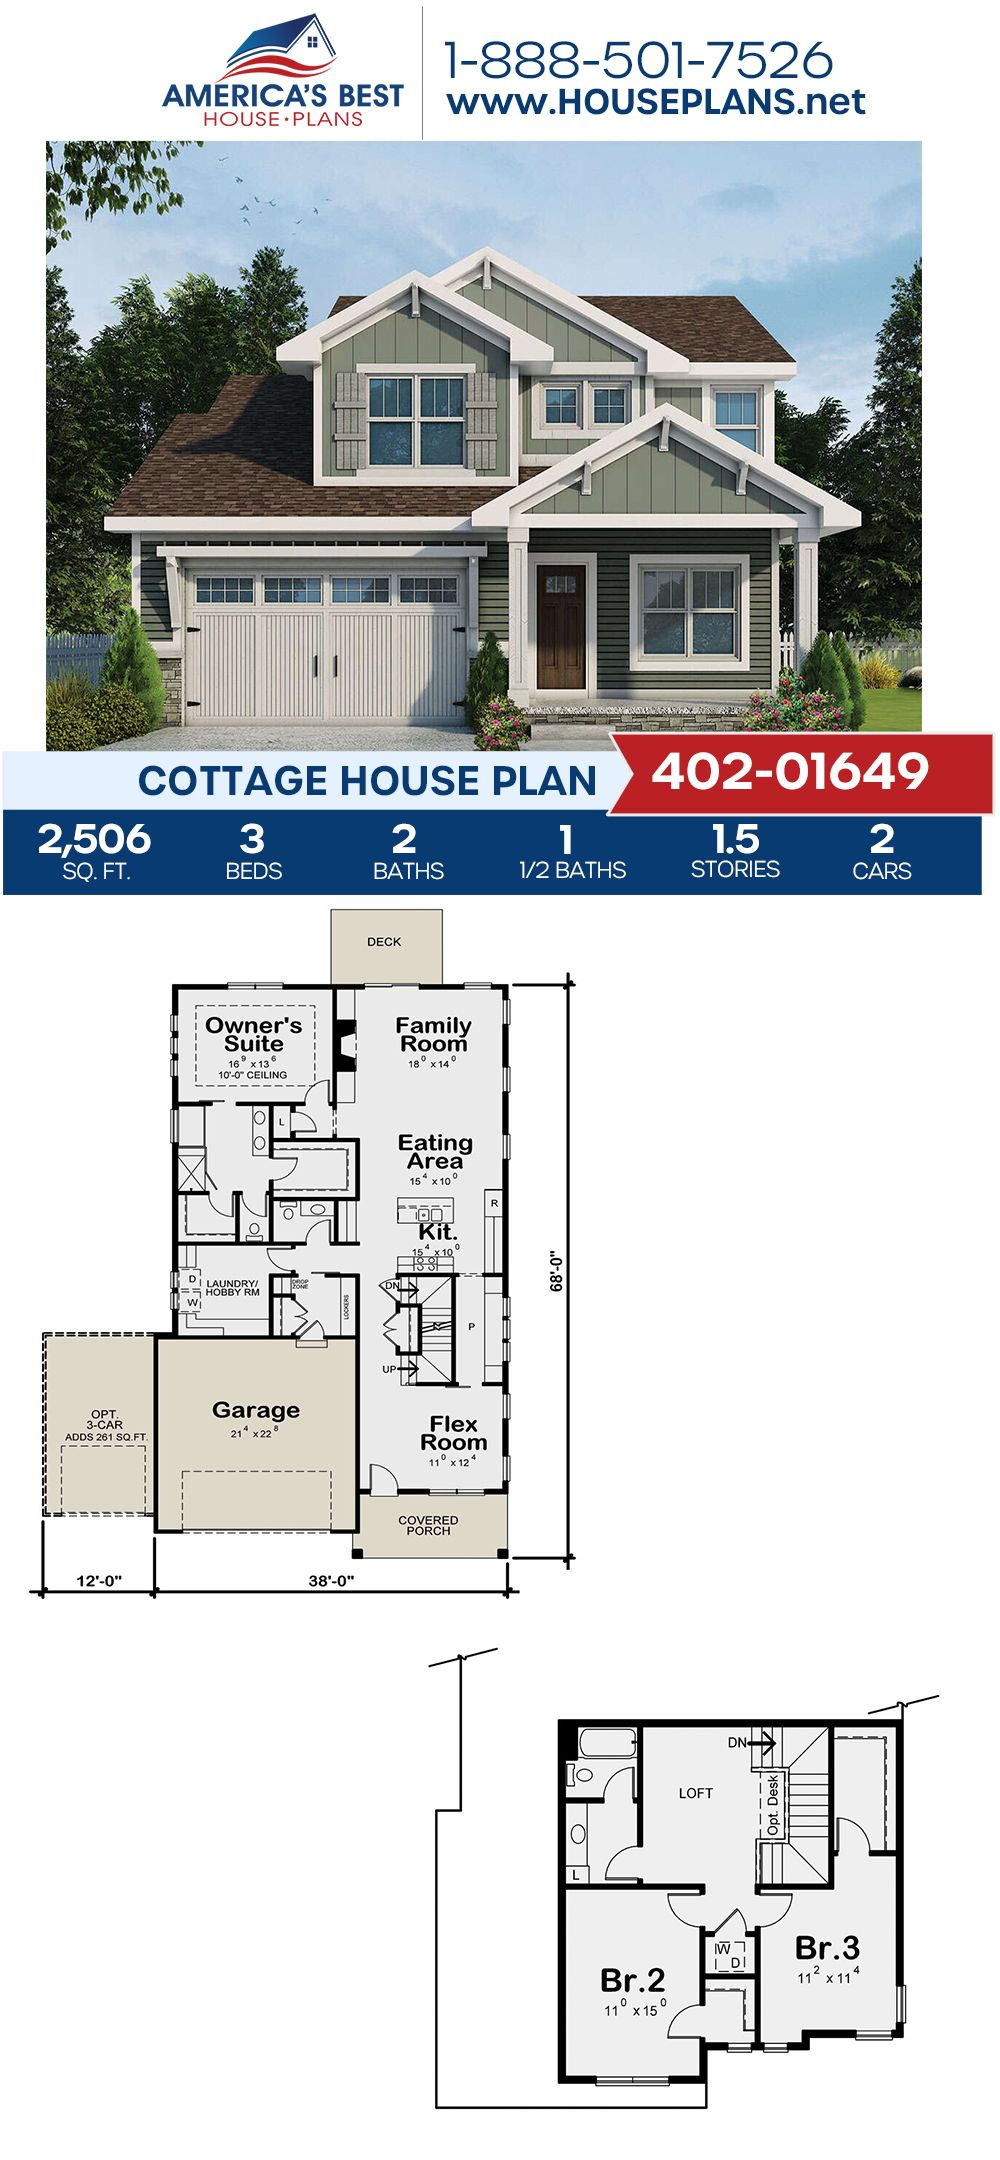 House Plan 402 01649 Cottage Plan 2 506 Square Feet 3 Bedrooms